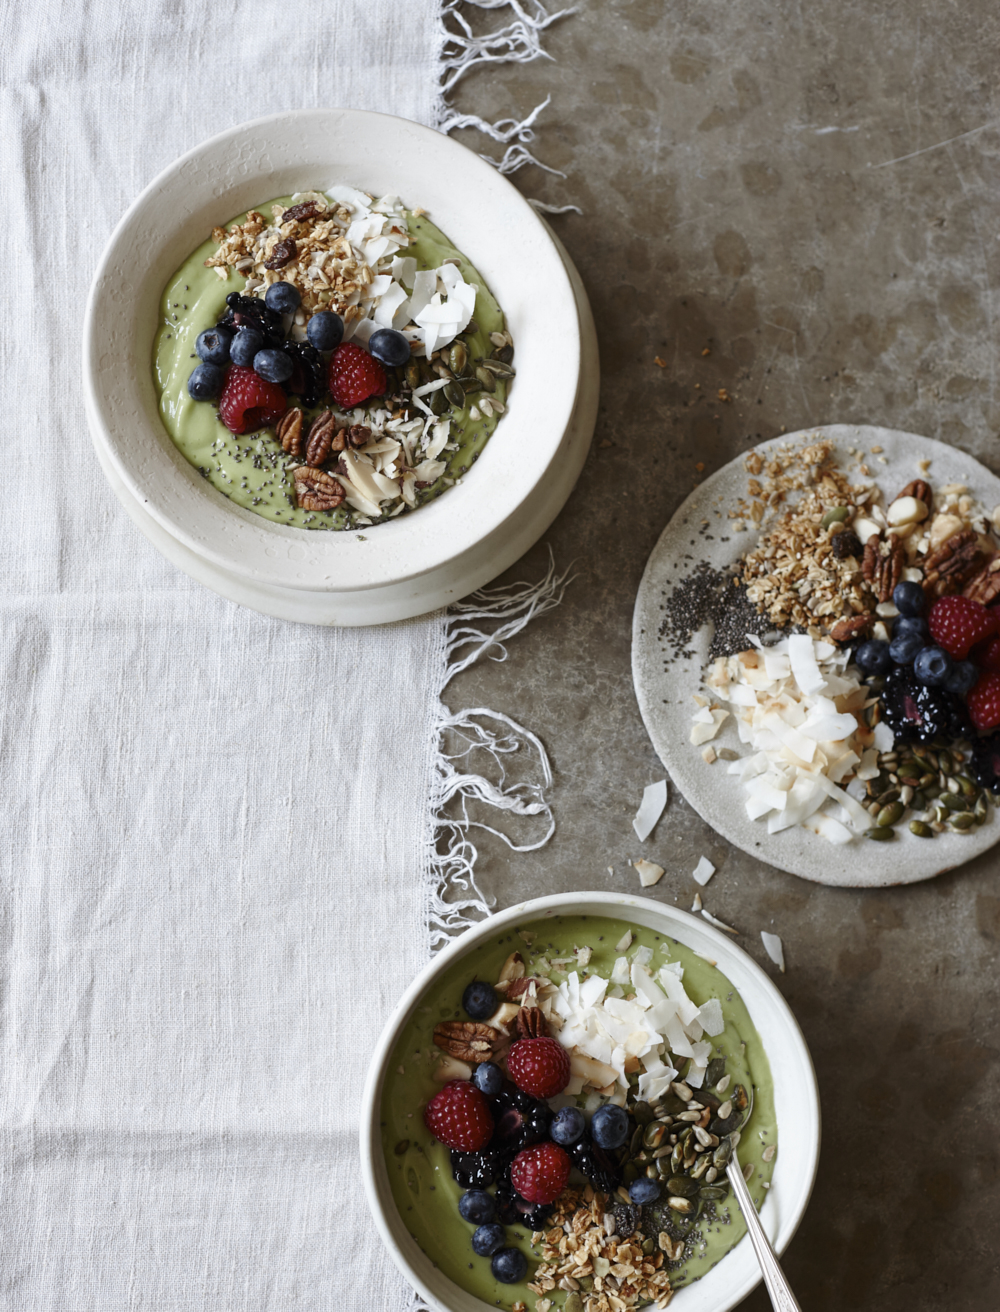 Avocado, coconut and berry breakfast bowls. Food photography from Joanna Henderson for Kyle Books